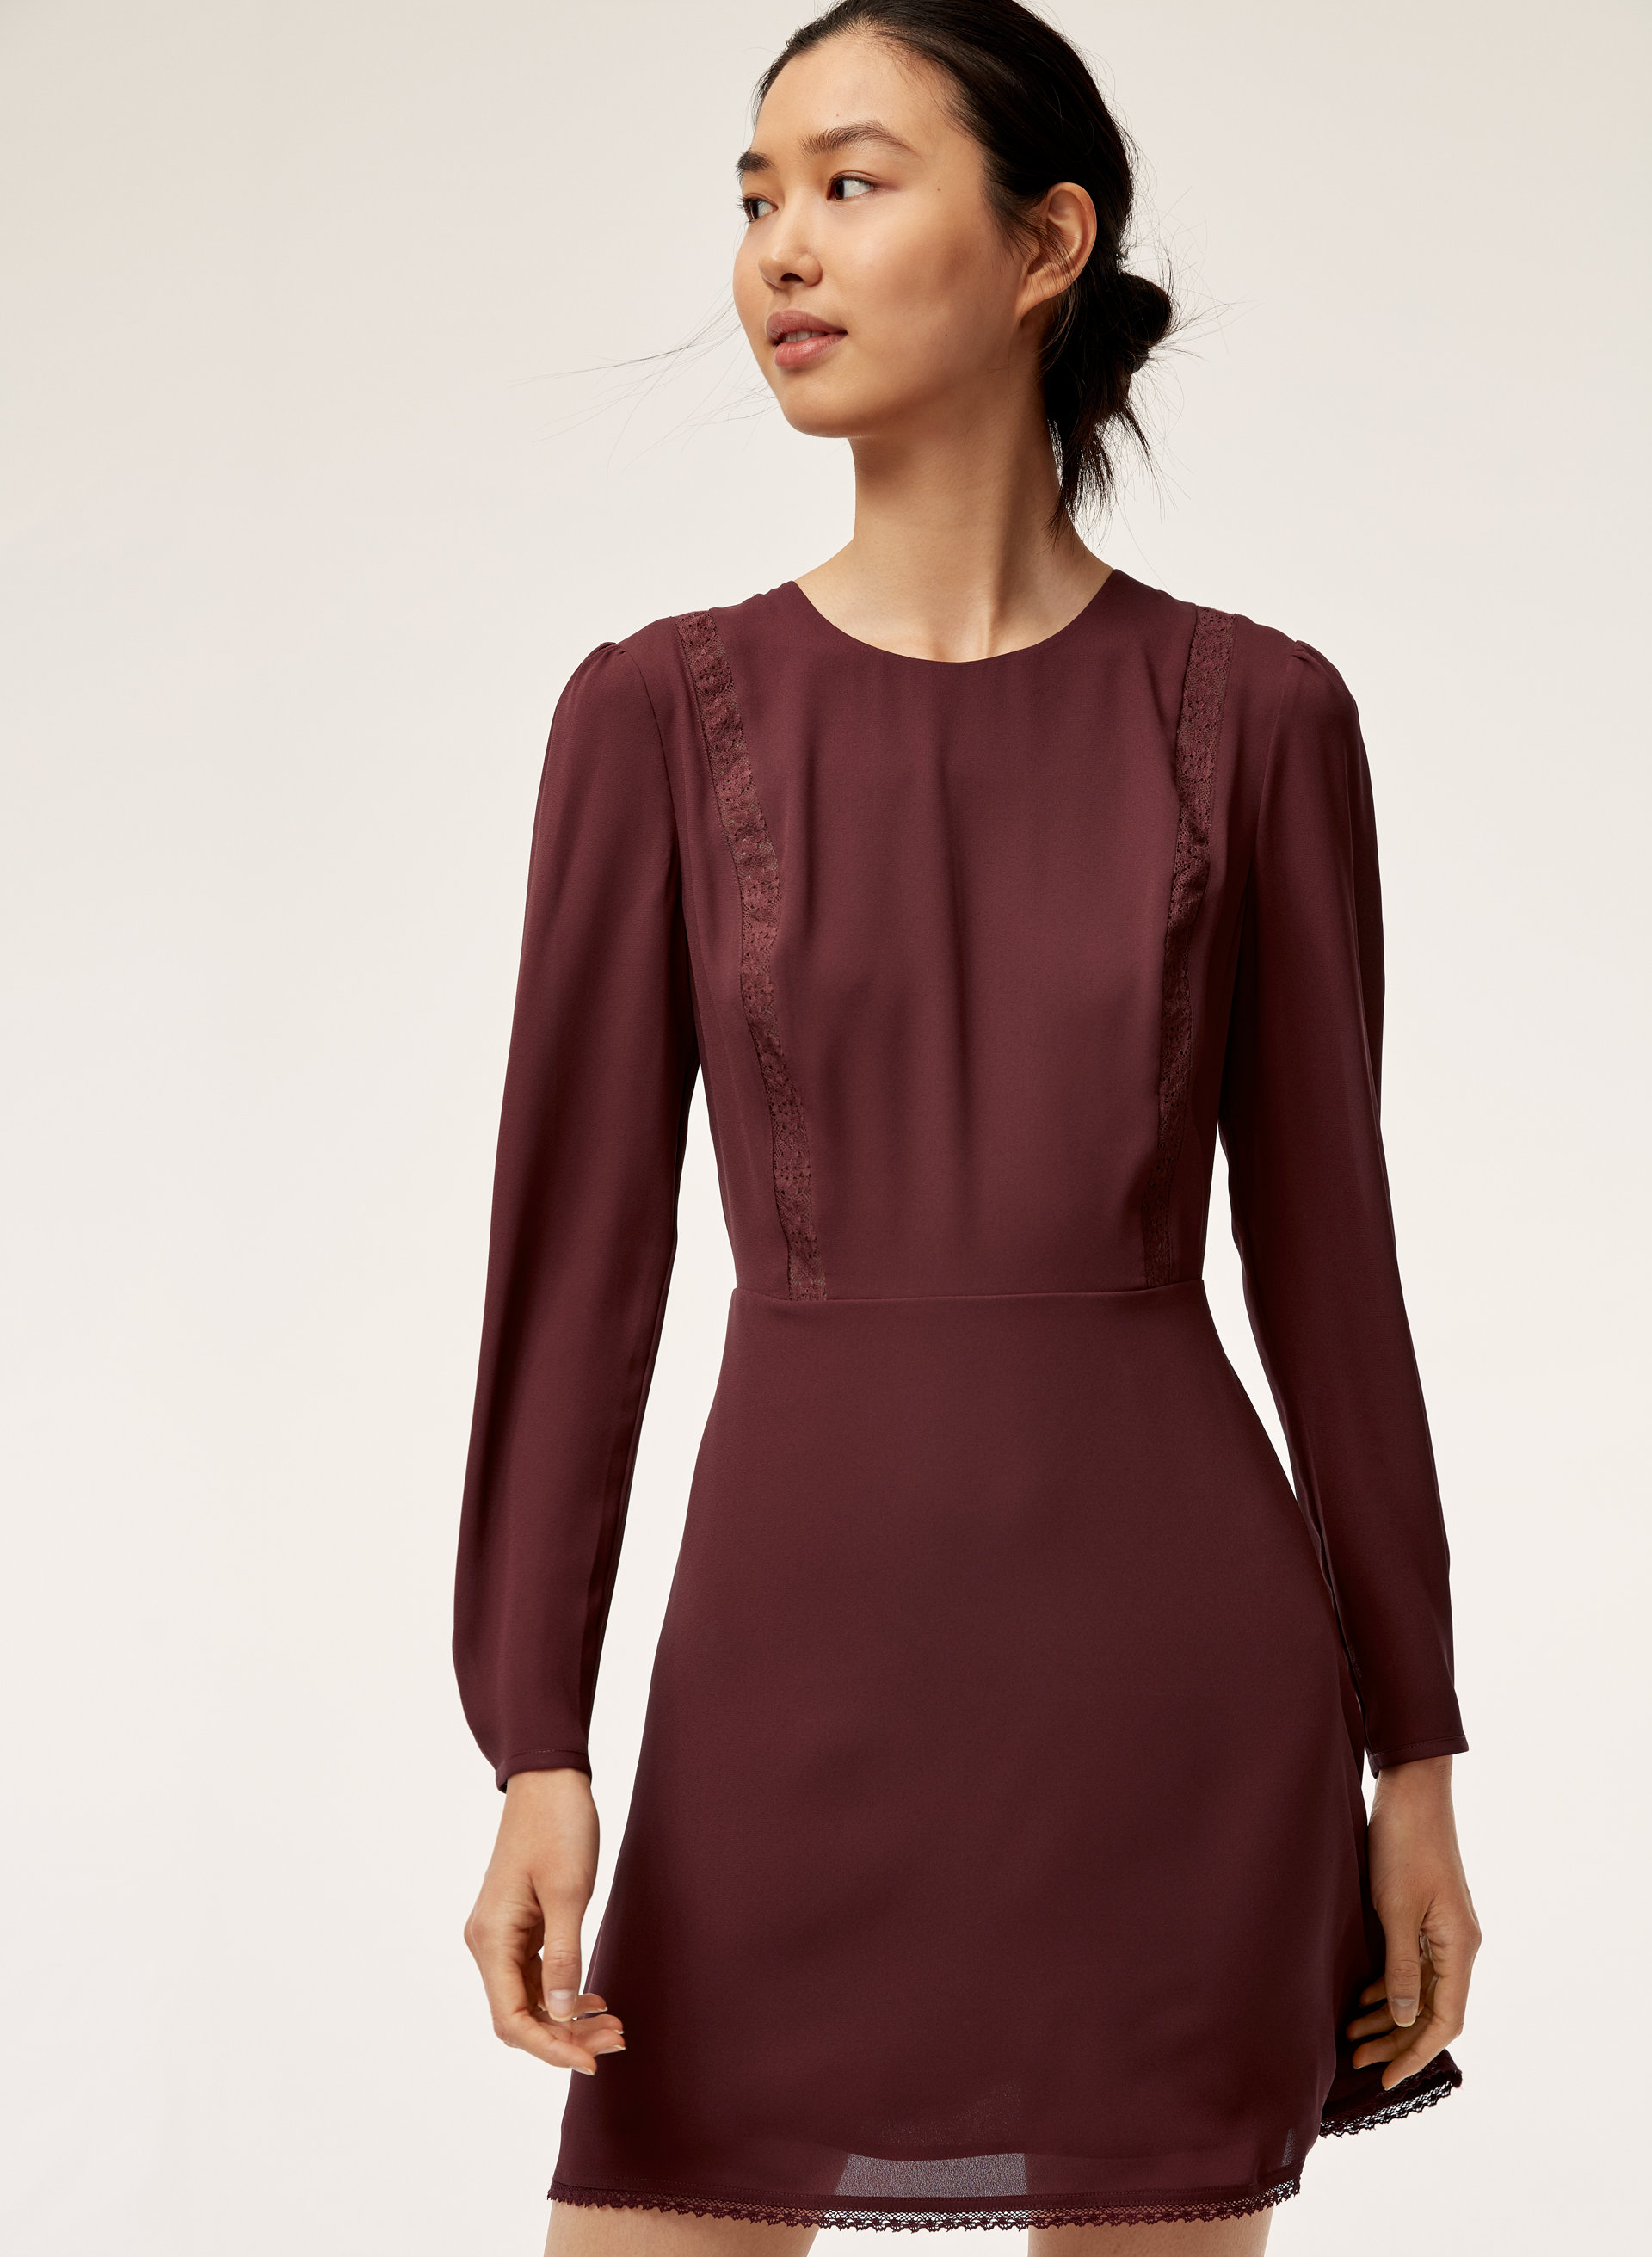 58e4f0afff4 austen dress Long-sleeve, fit-and-flare dress